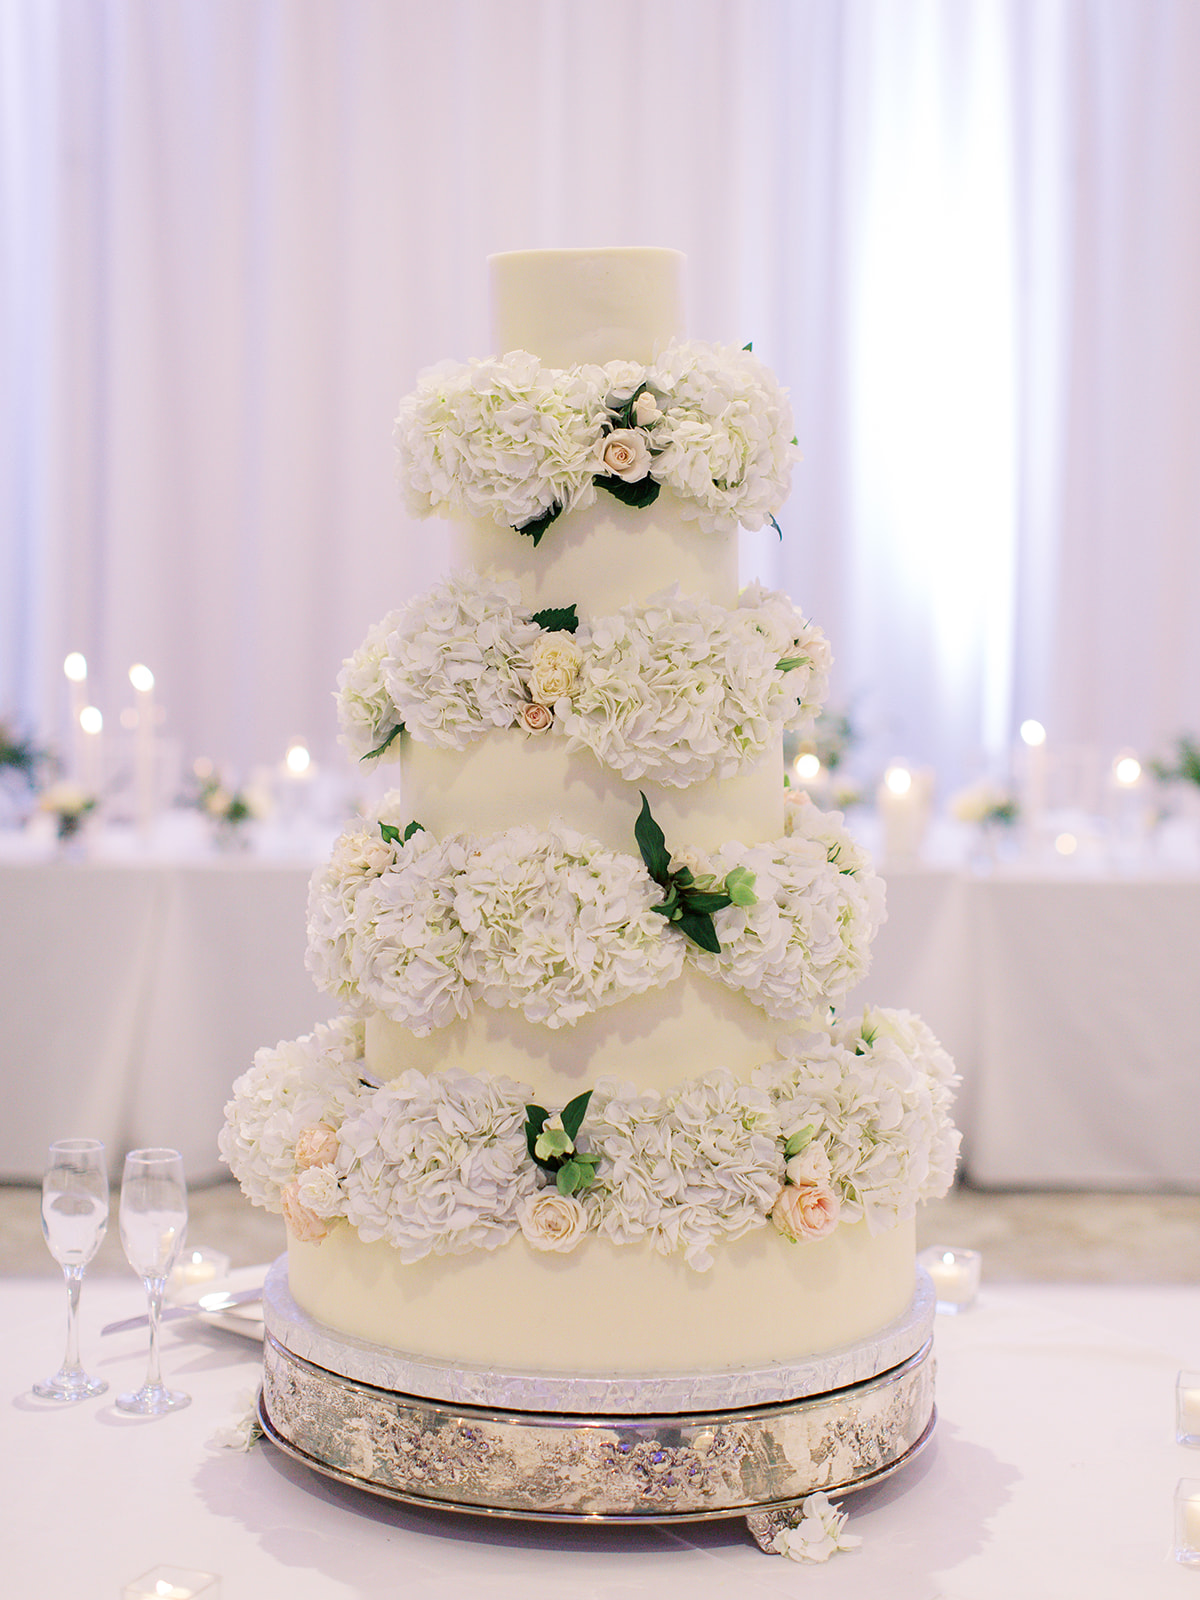 Ritz Charles wedding cake with floral decor